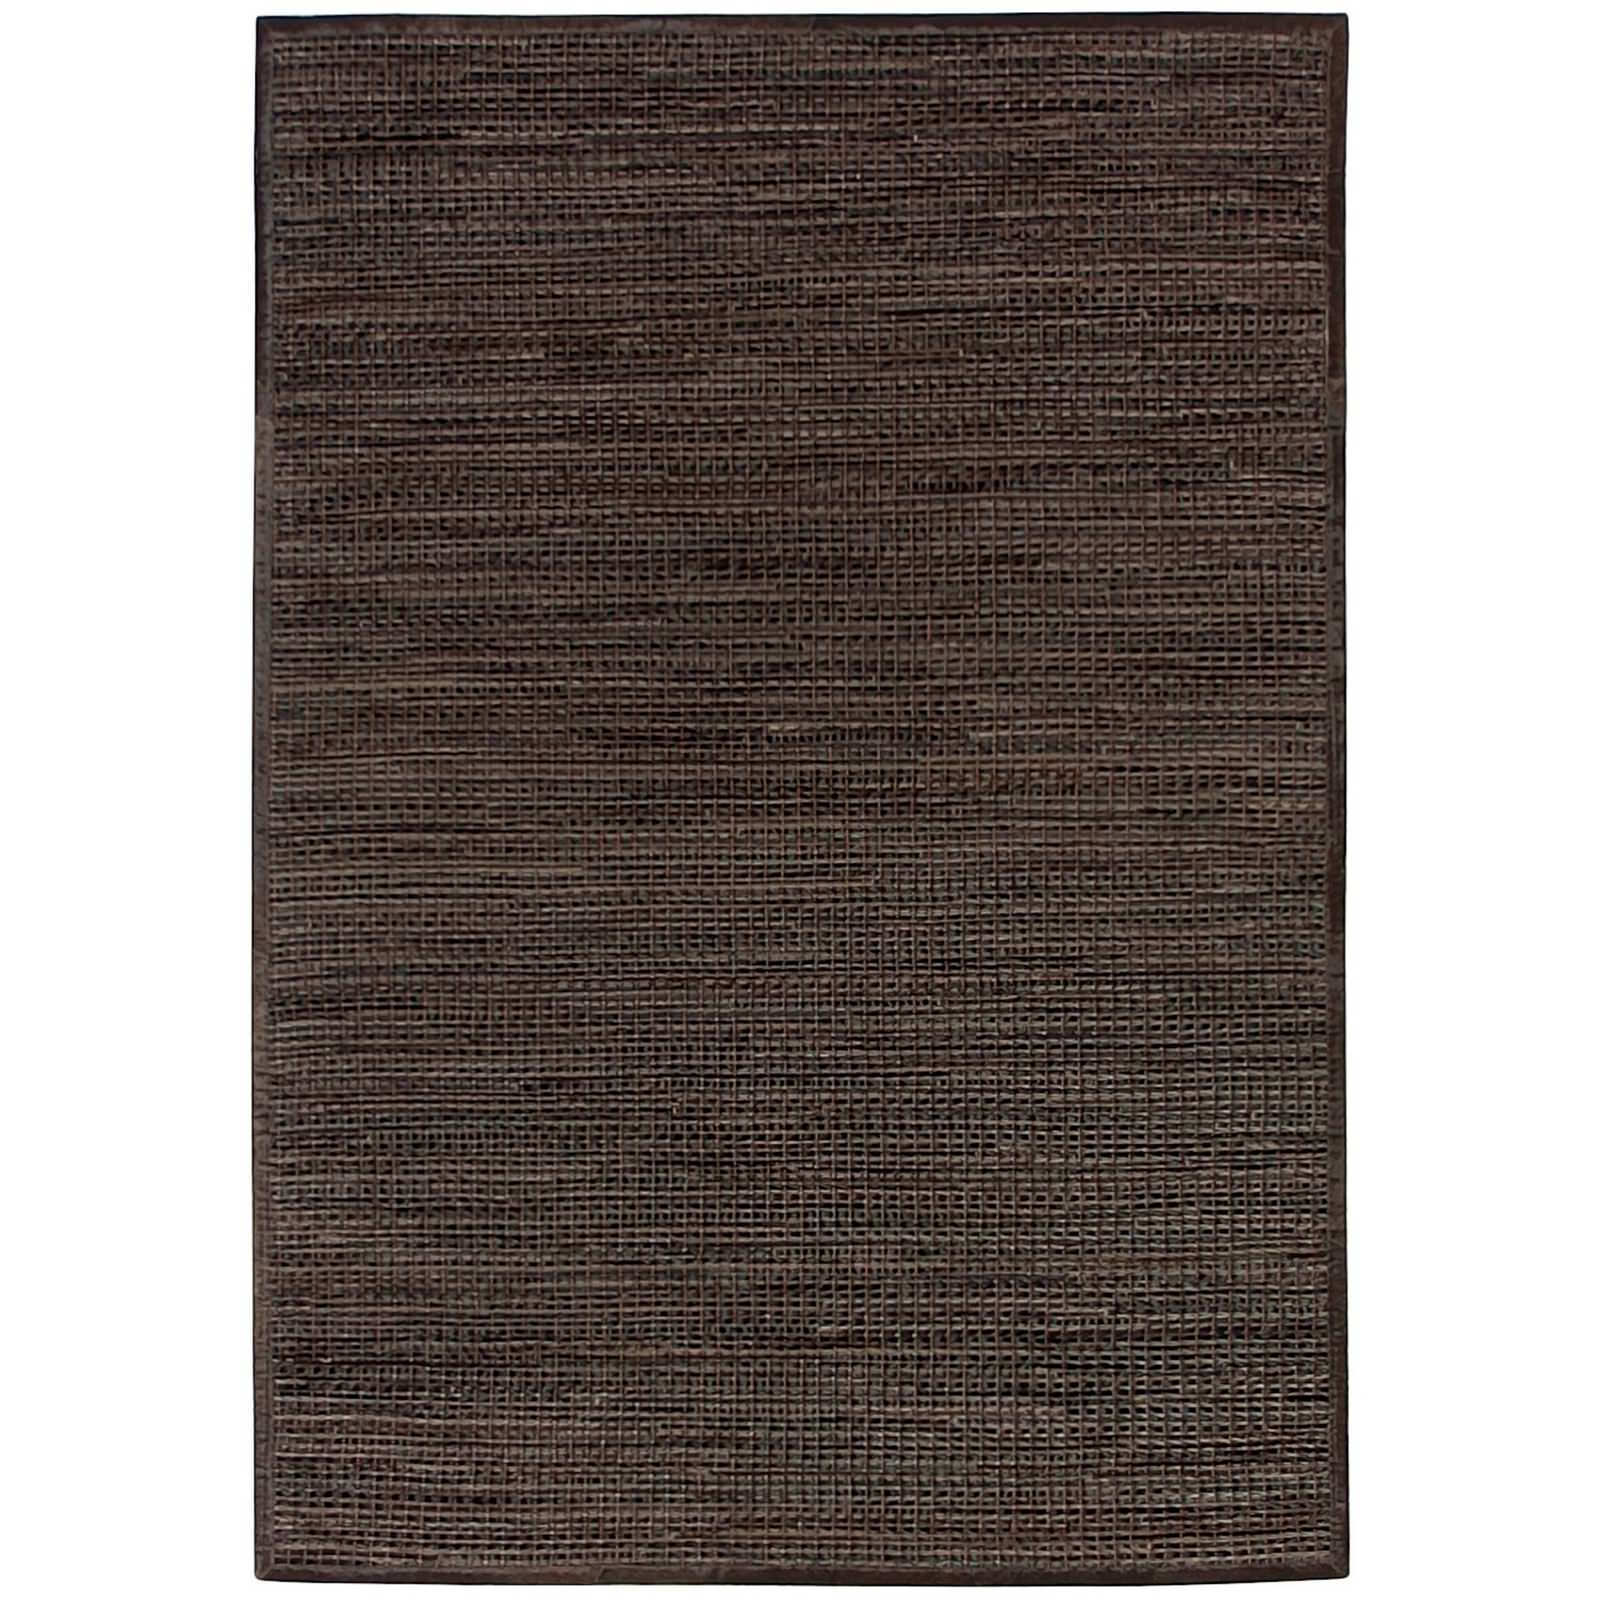 Chase Handwoven Hide & Leather Rug, 250x300cm, Cocoa